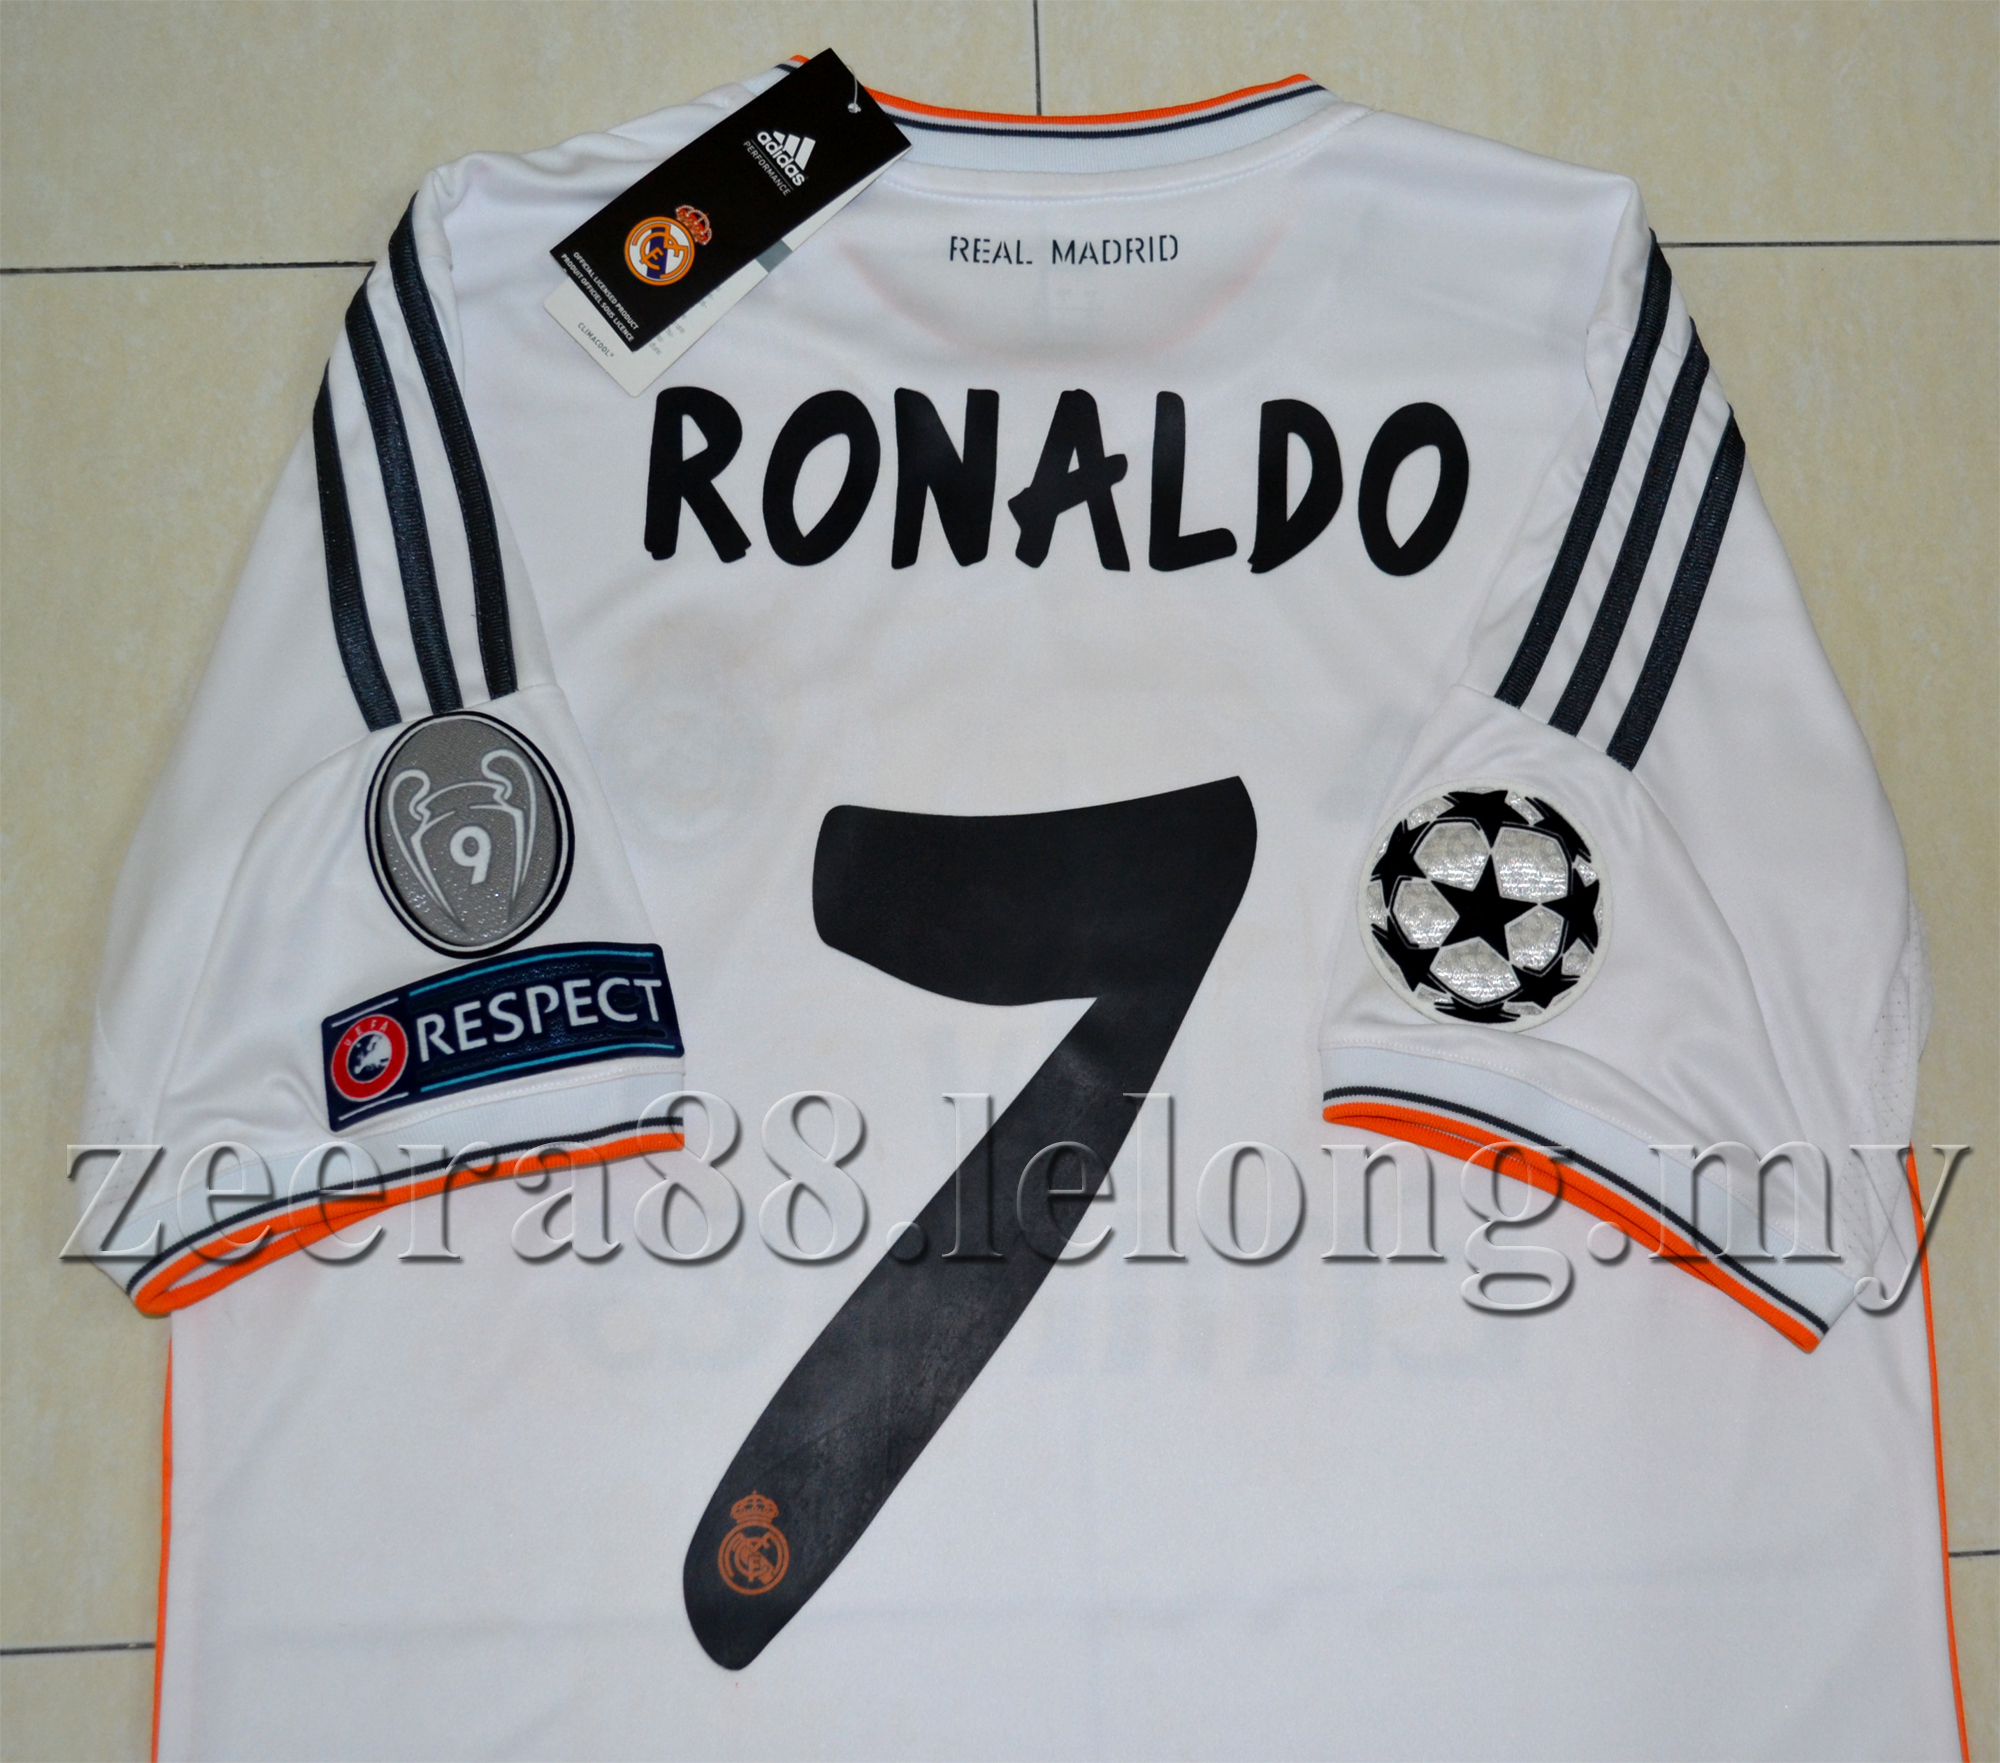 check out dbd62 7a588 Real Madrid Home Jersey RONALDO UEFA 2013/2014 Original Quality Official  Kit 7 pc